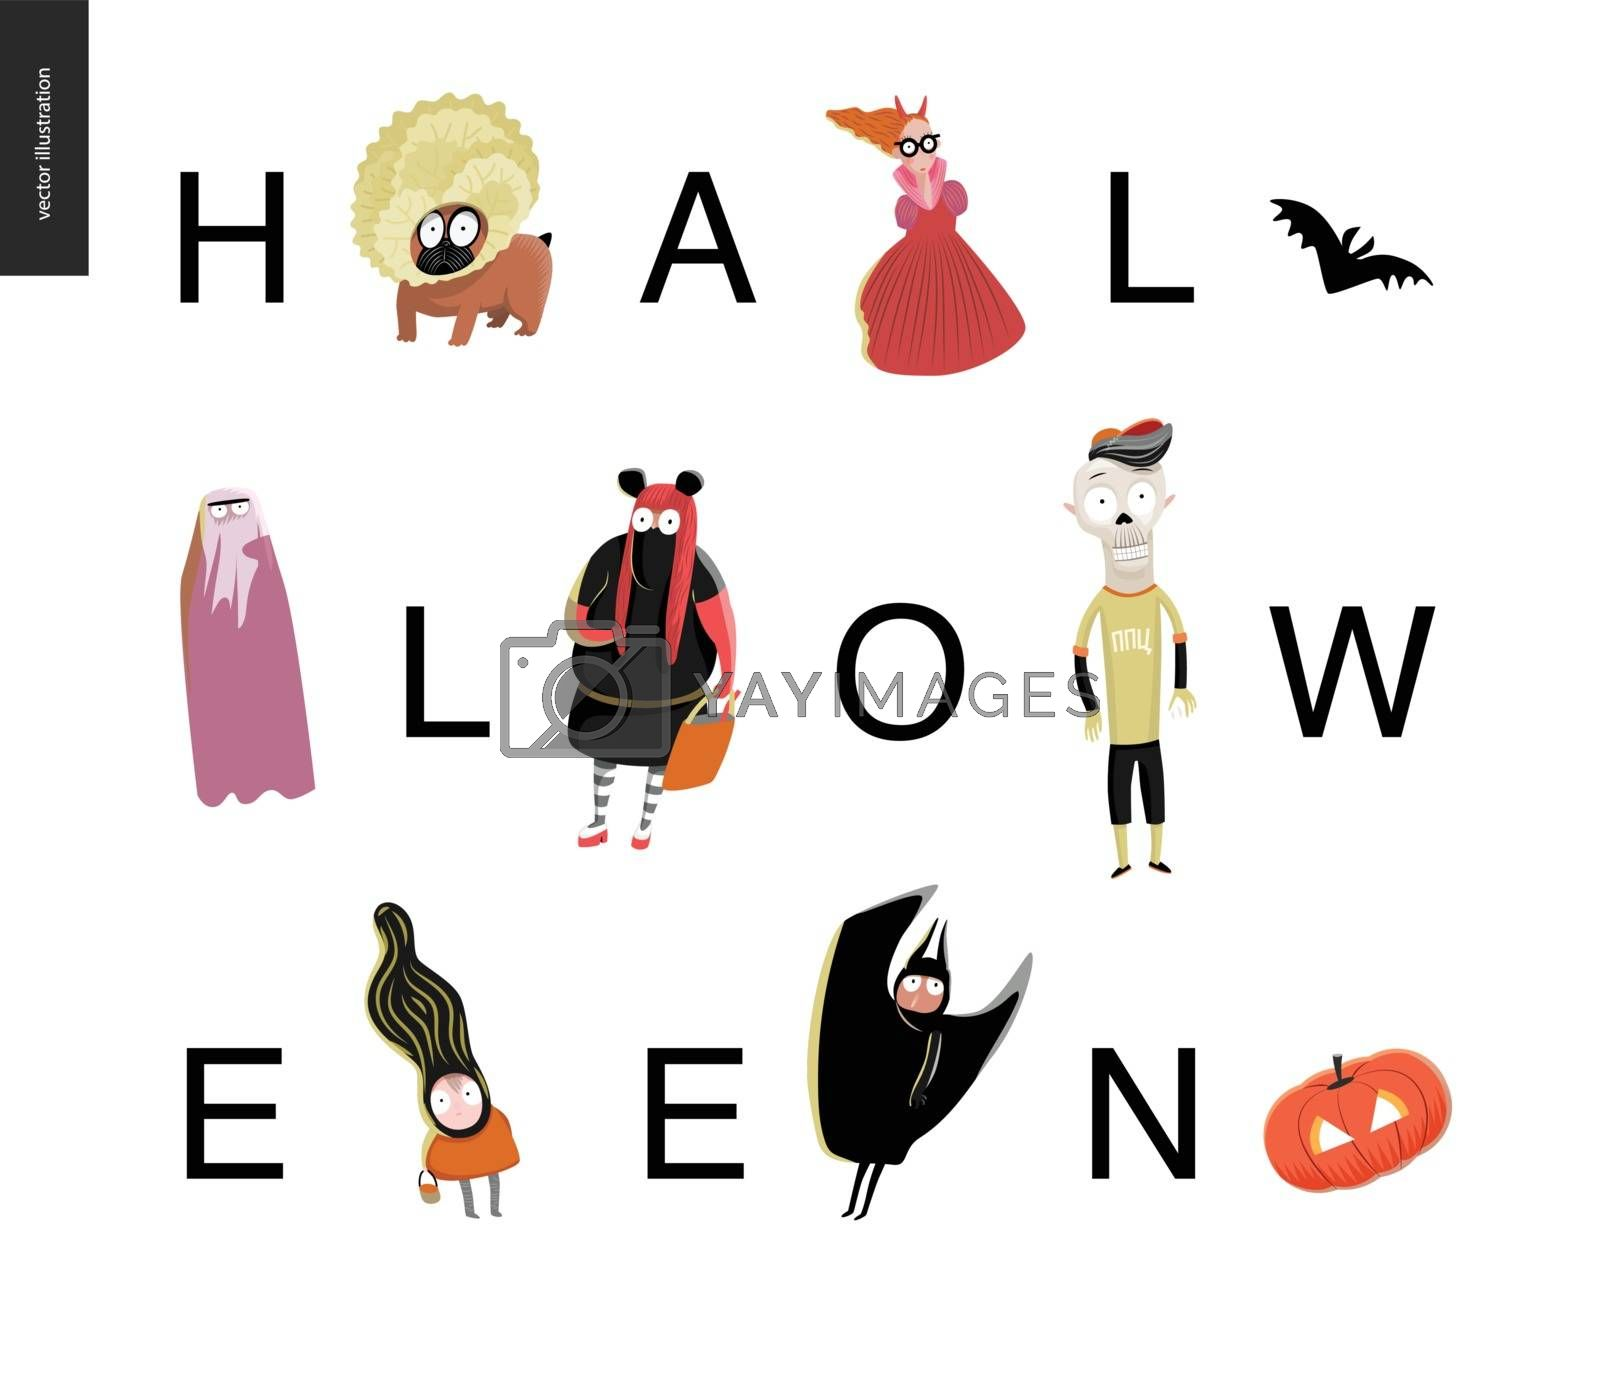 Halloween lettering card. Vector cartoon illustrated kids wearing Halloween costumes and a french bulldog, with letters composing a word Halloween. Composition placed on a white background